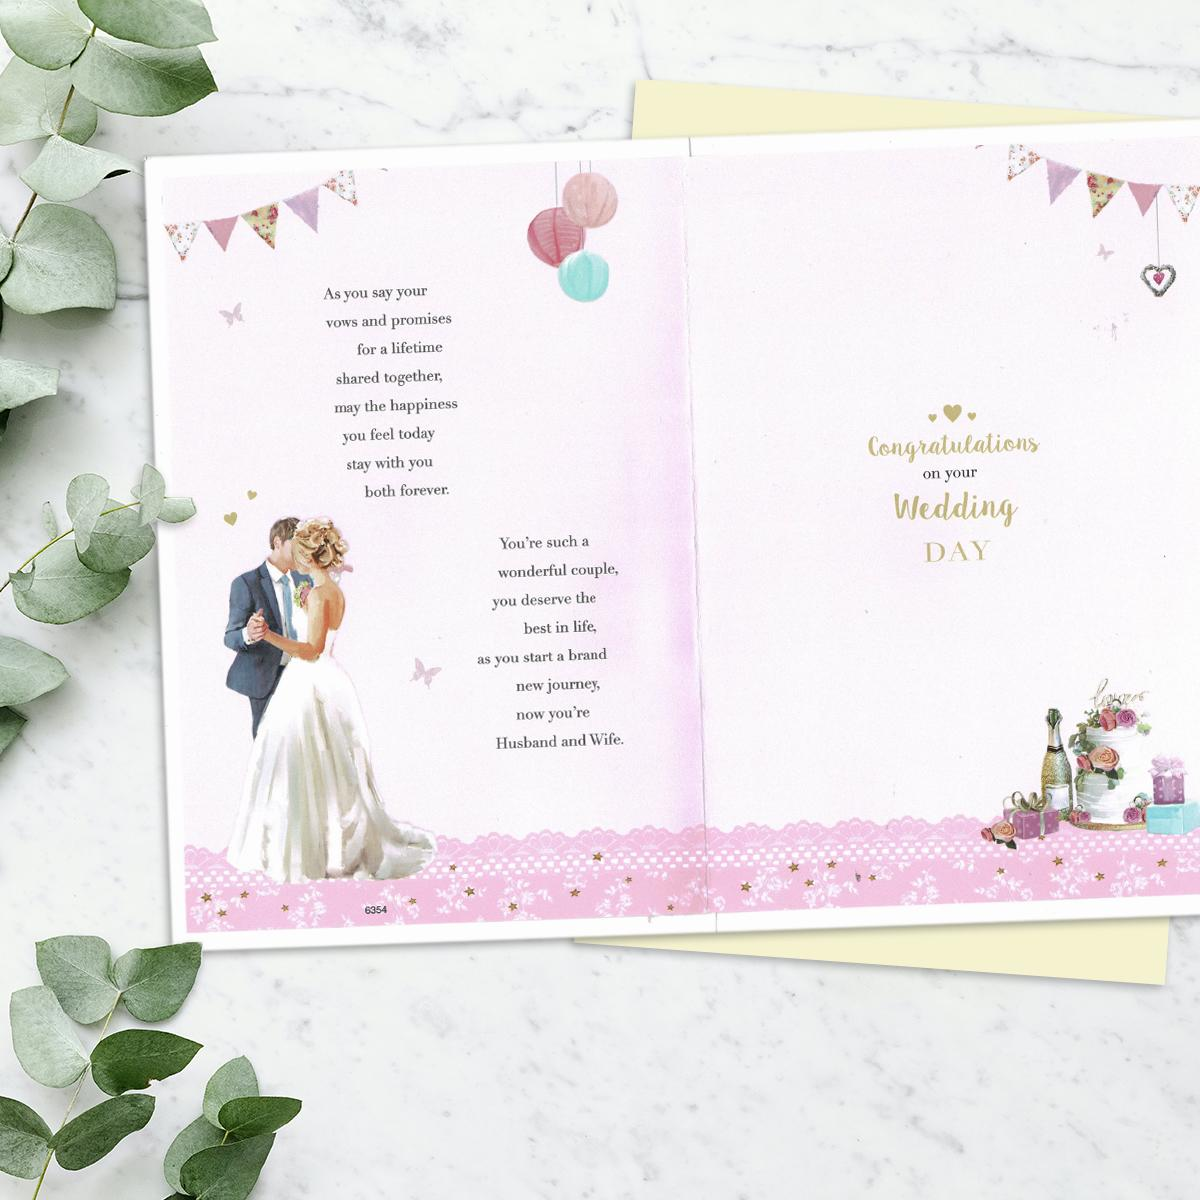 Image Of Inside Of Wedding Card To Show Layout